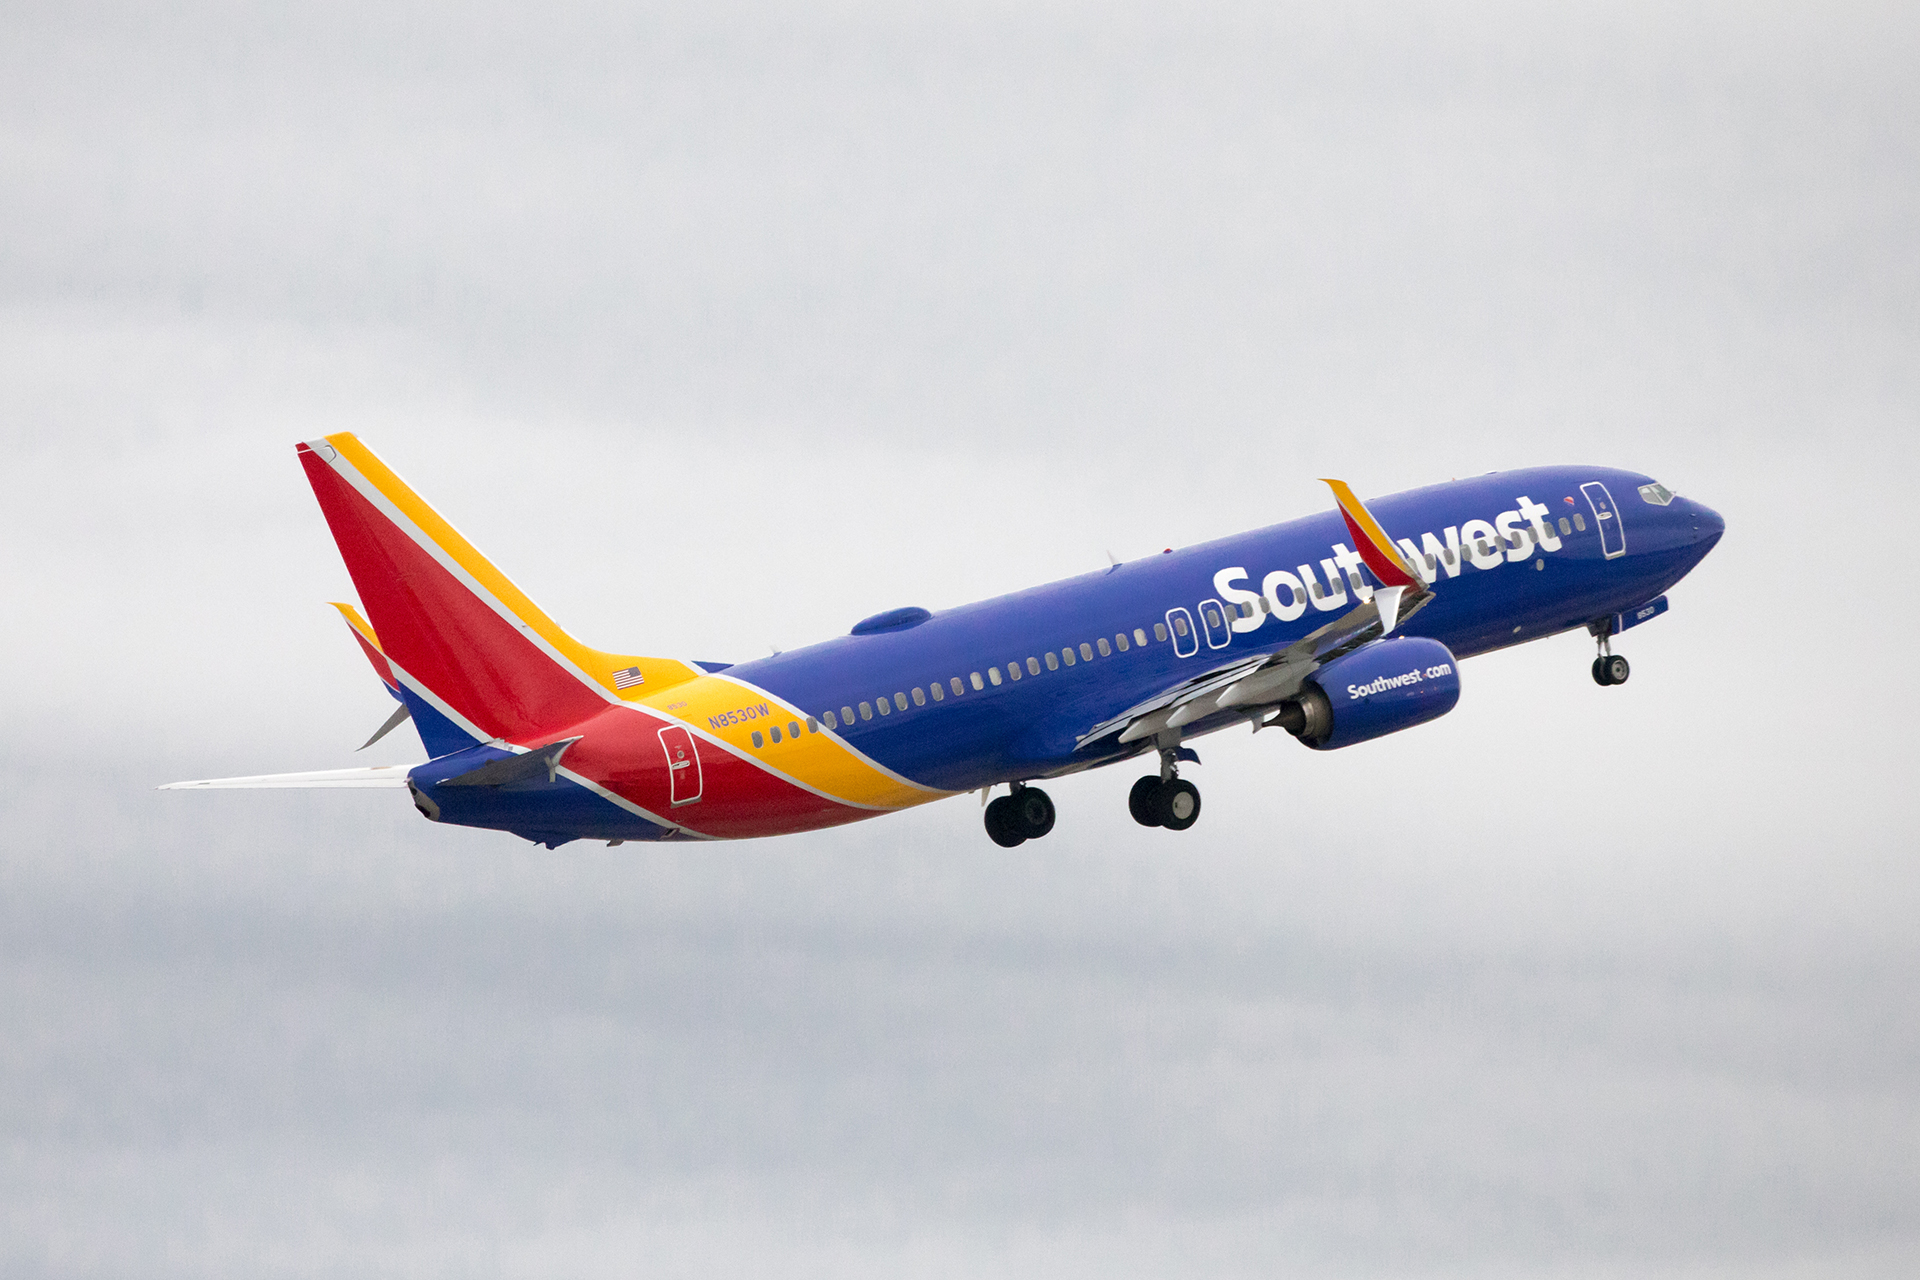 Southwest Airlines announces plans to construct maintenance hangar at DIA